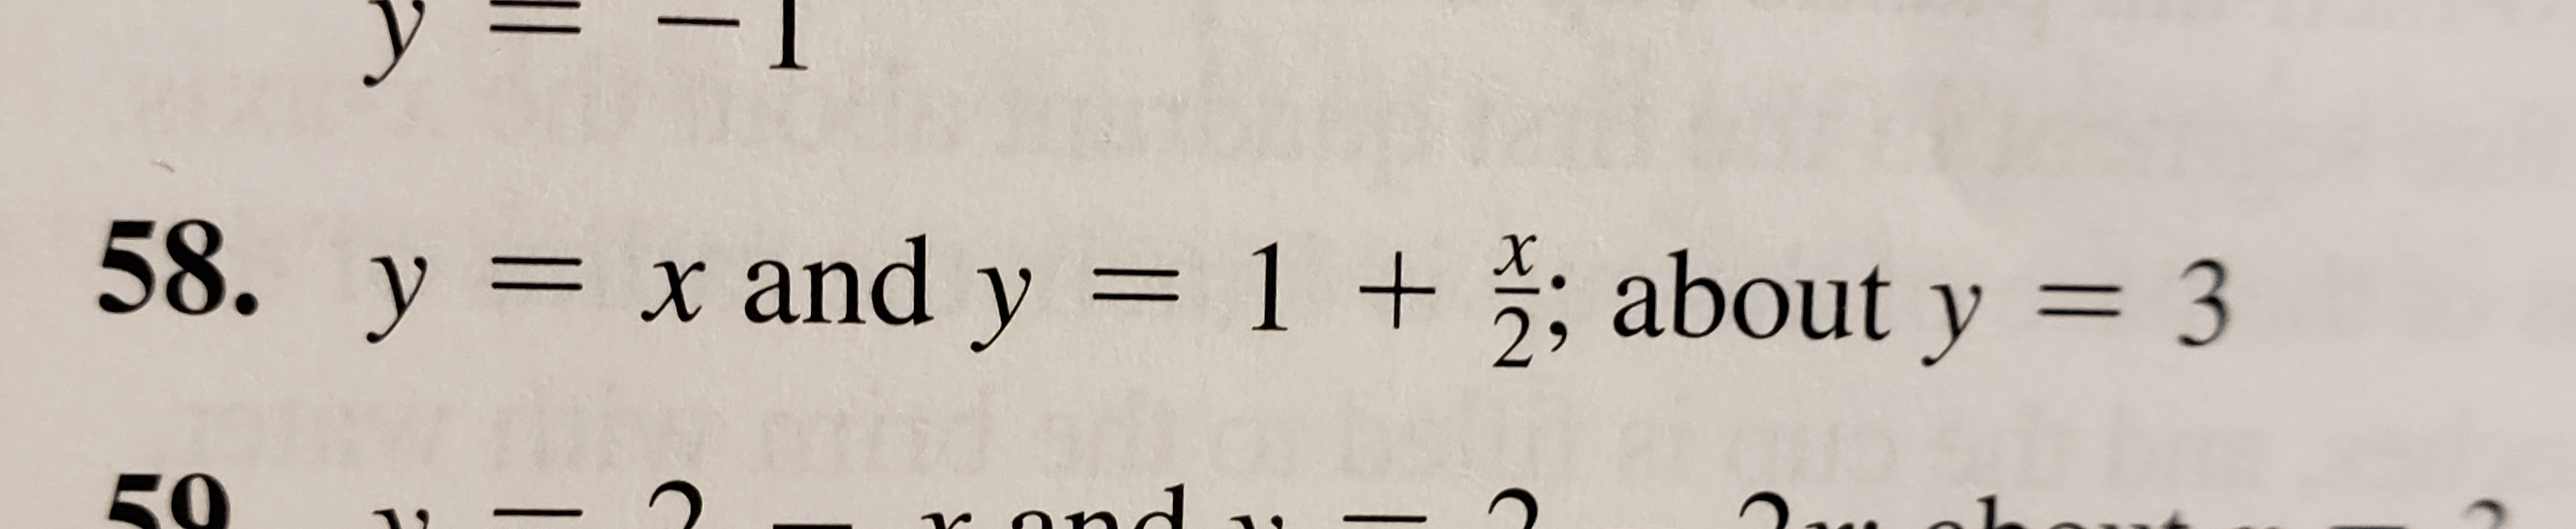 58. y = x and y = 1 + ; about y = 3 %3D 2, 50